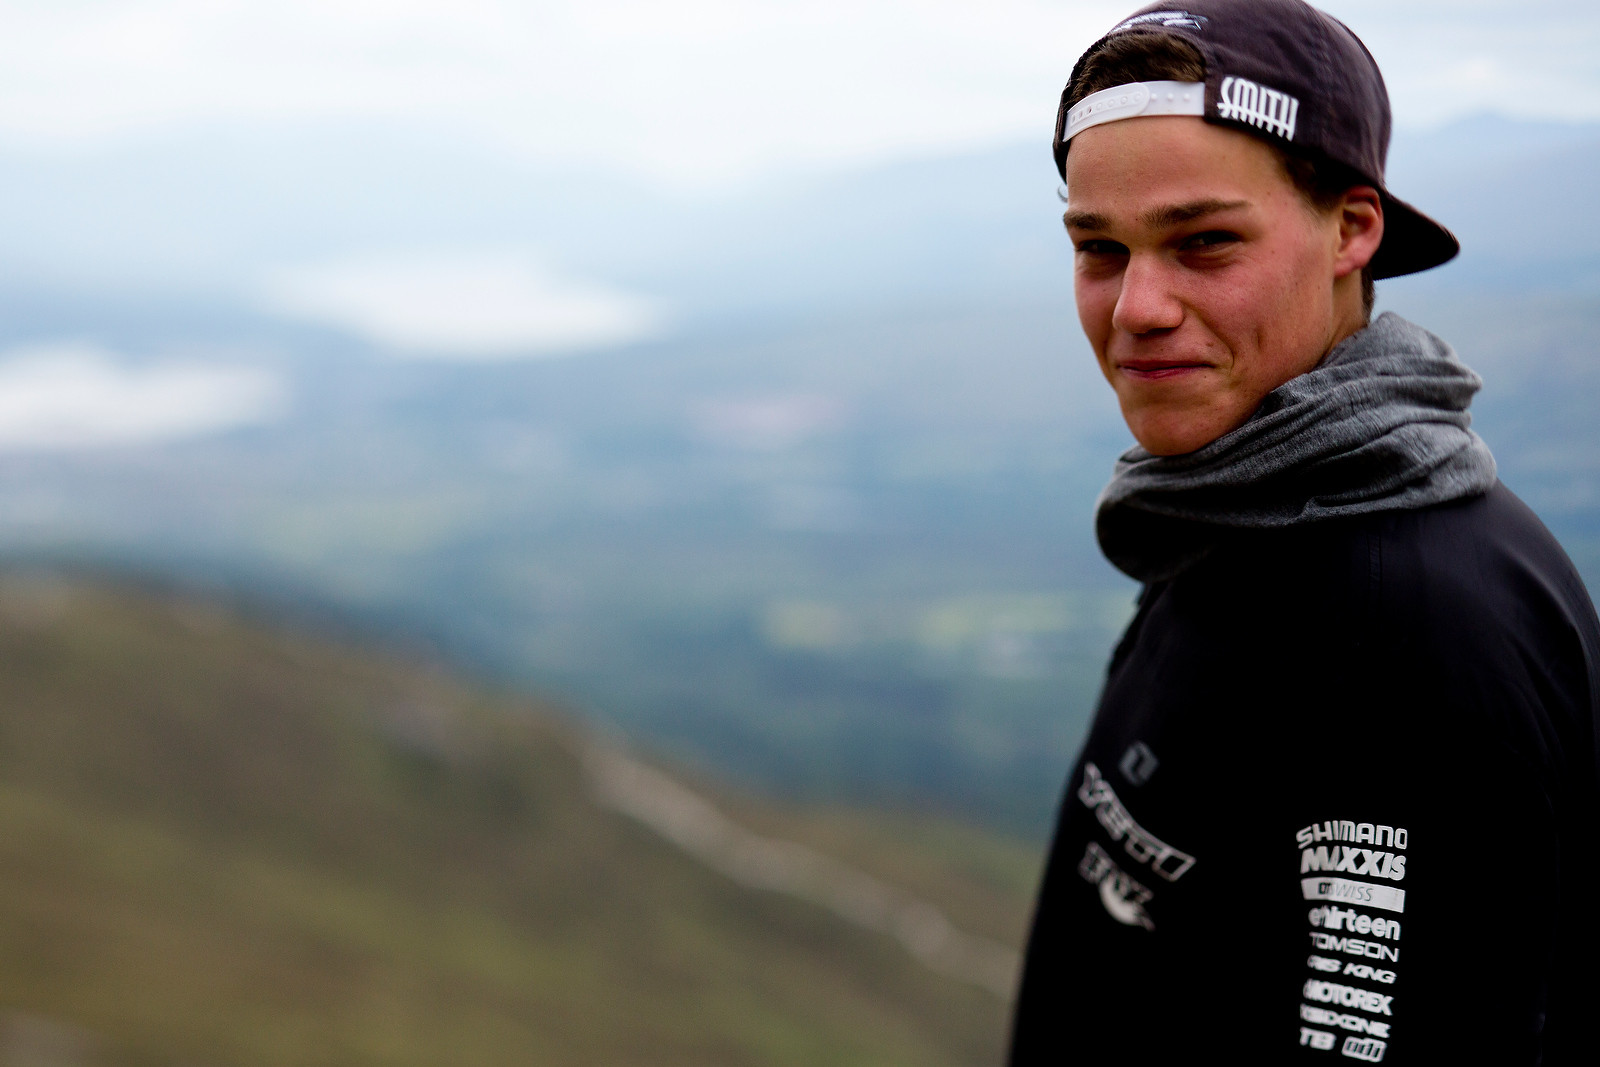 Richie Rude, Ready for Fort William - 2012 UCI World Cup, Fort WIlliam Scotland, Day 1 - Mountain Biking Pictures - Vital MTB